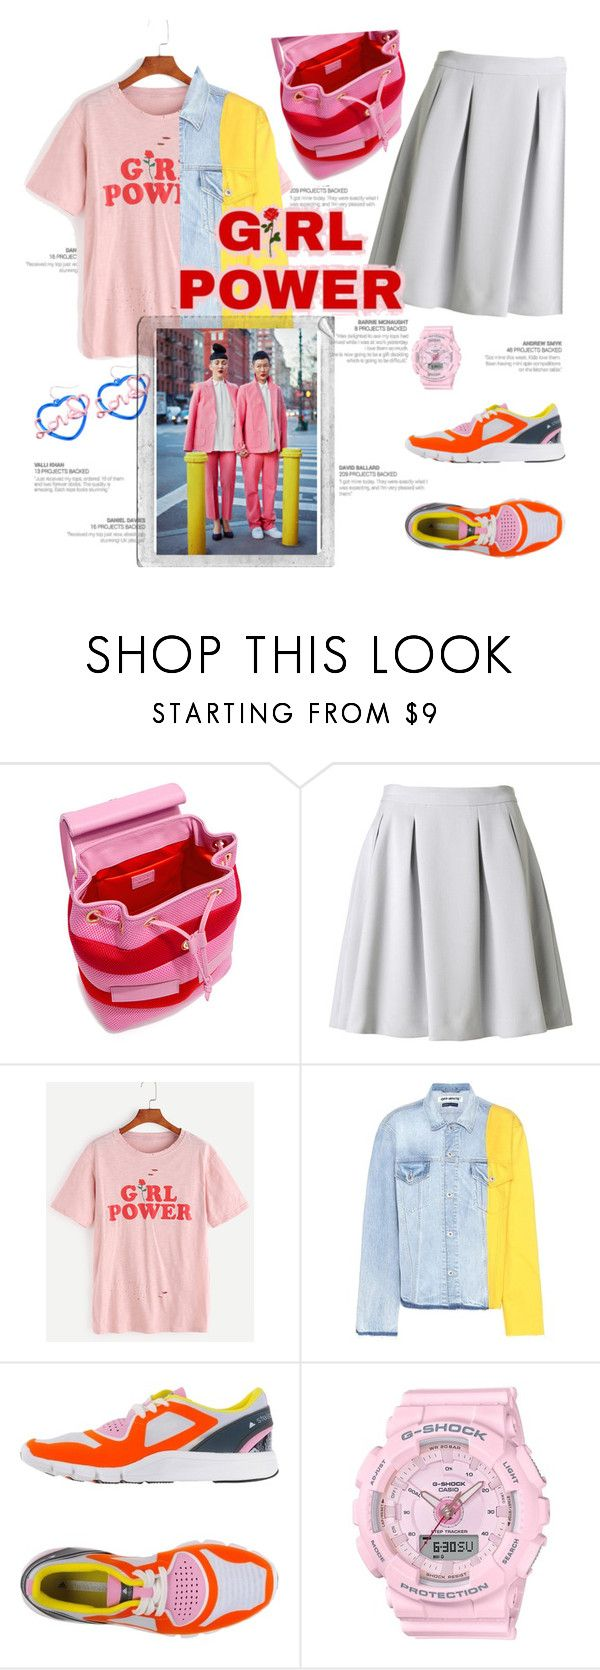 """""""girl power"""" by lianafourmouzi ❤ liked on Polyvore featuring Boutique Moschino, By Malene Birger, Off-White, adidas, Baby-G, Polaroid, GET LOST, girlpower and powerlook"""